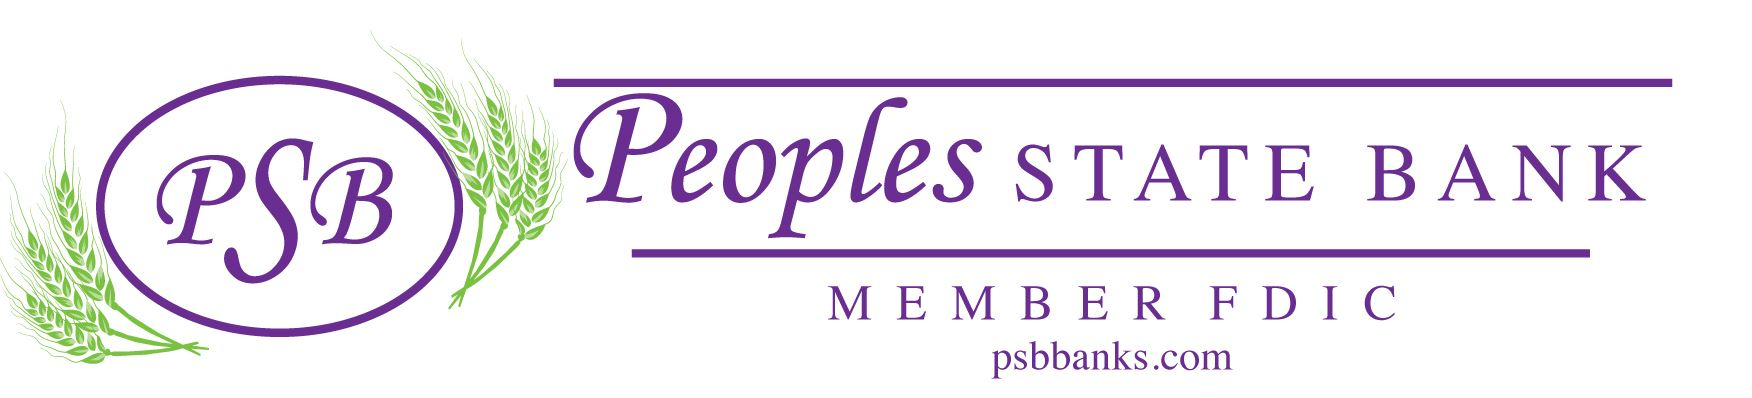 Peoples State Bank Company Image